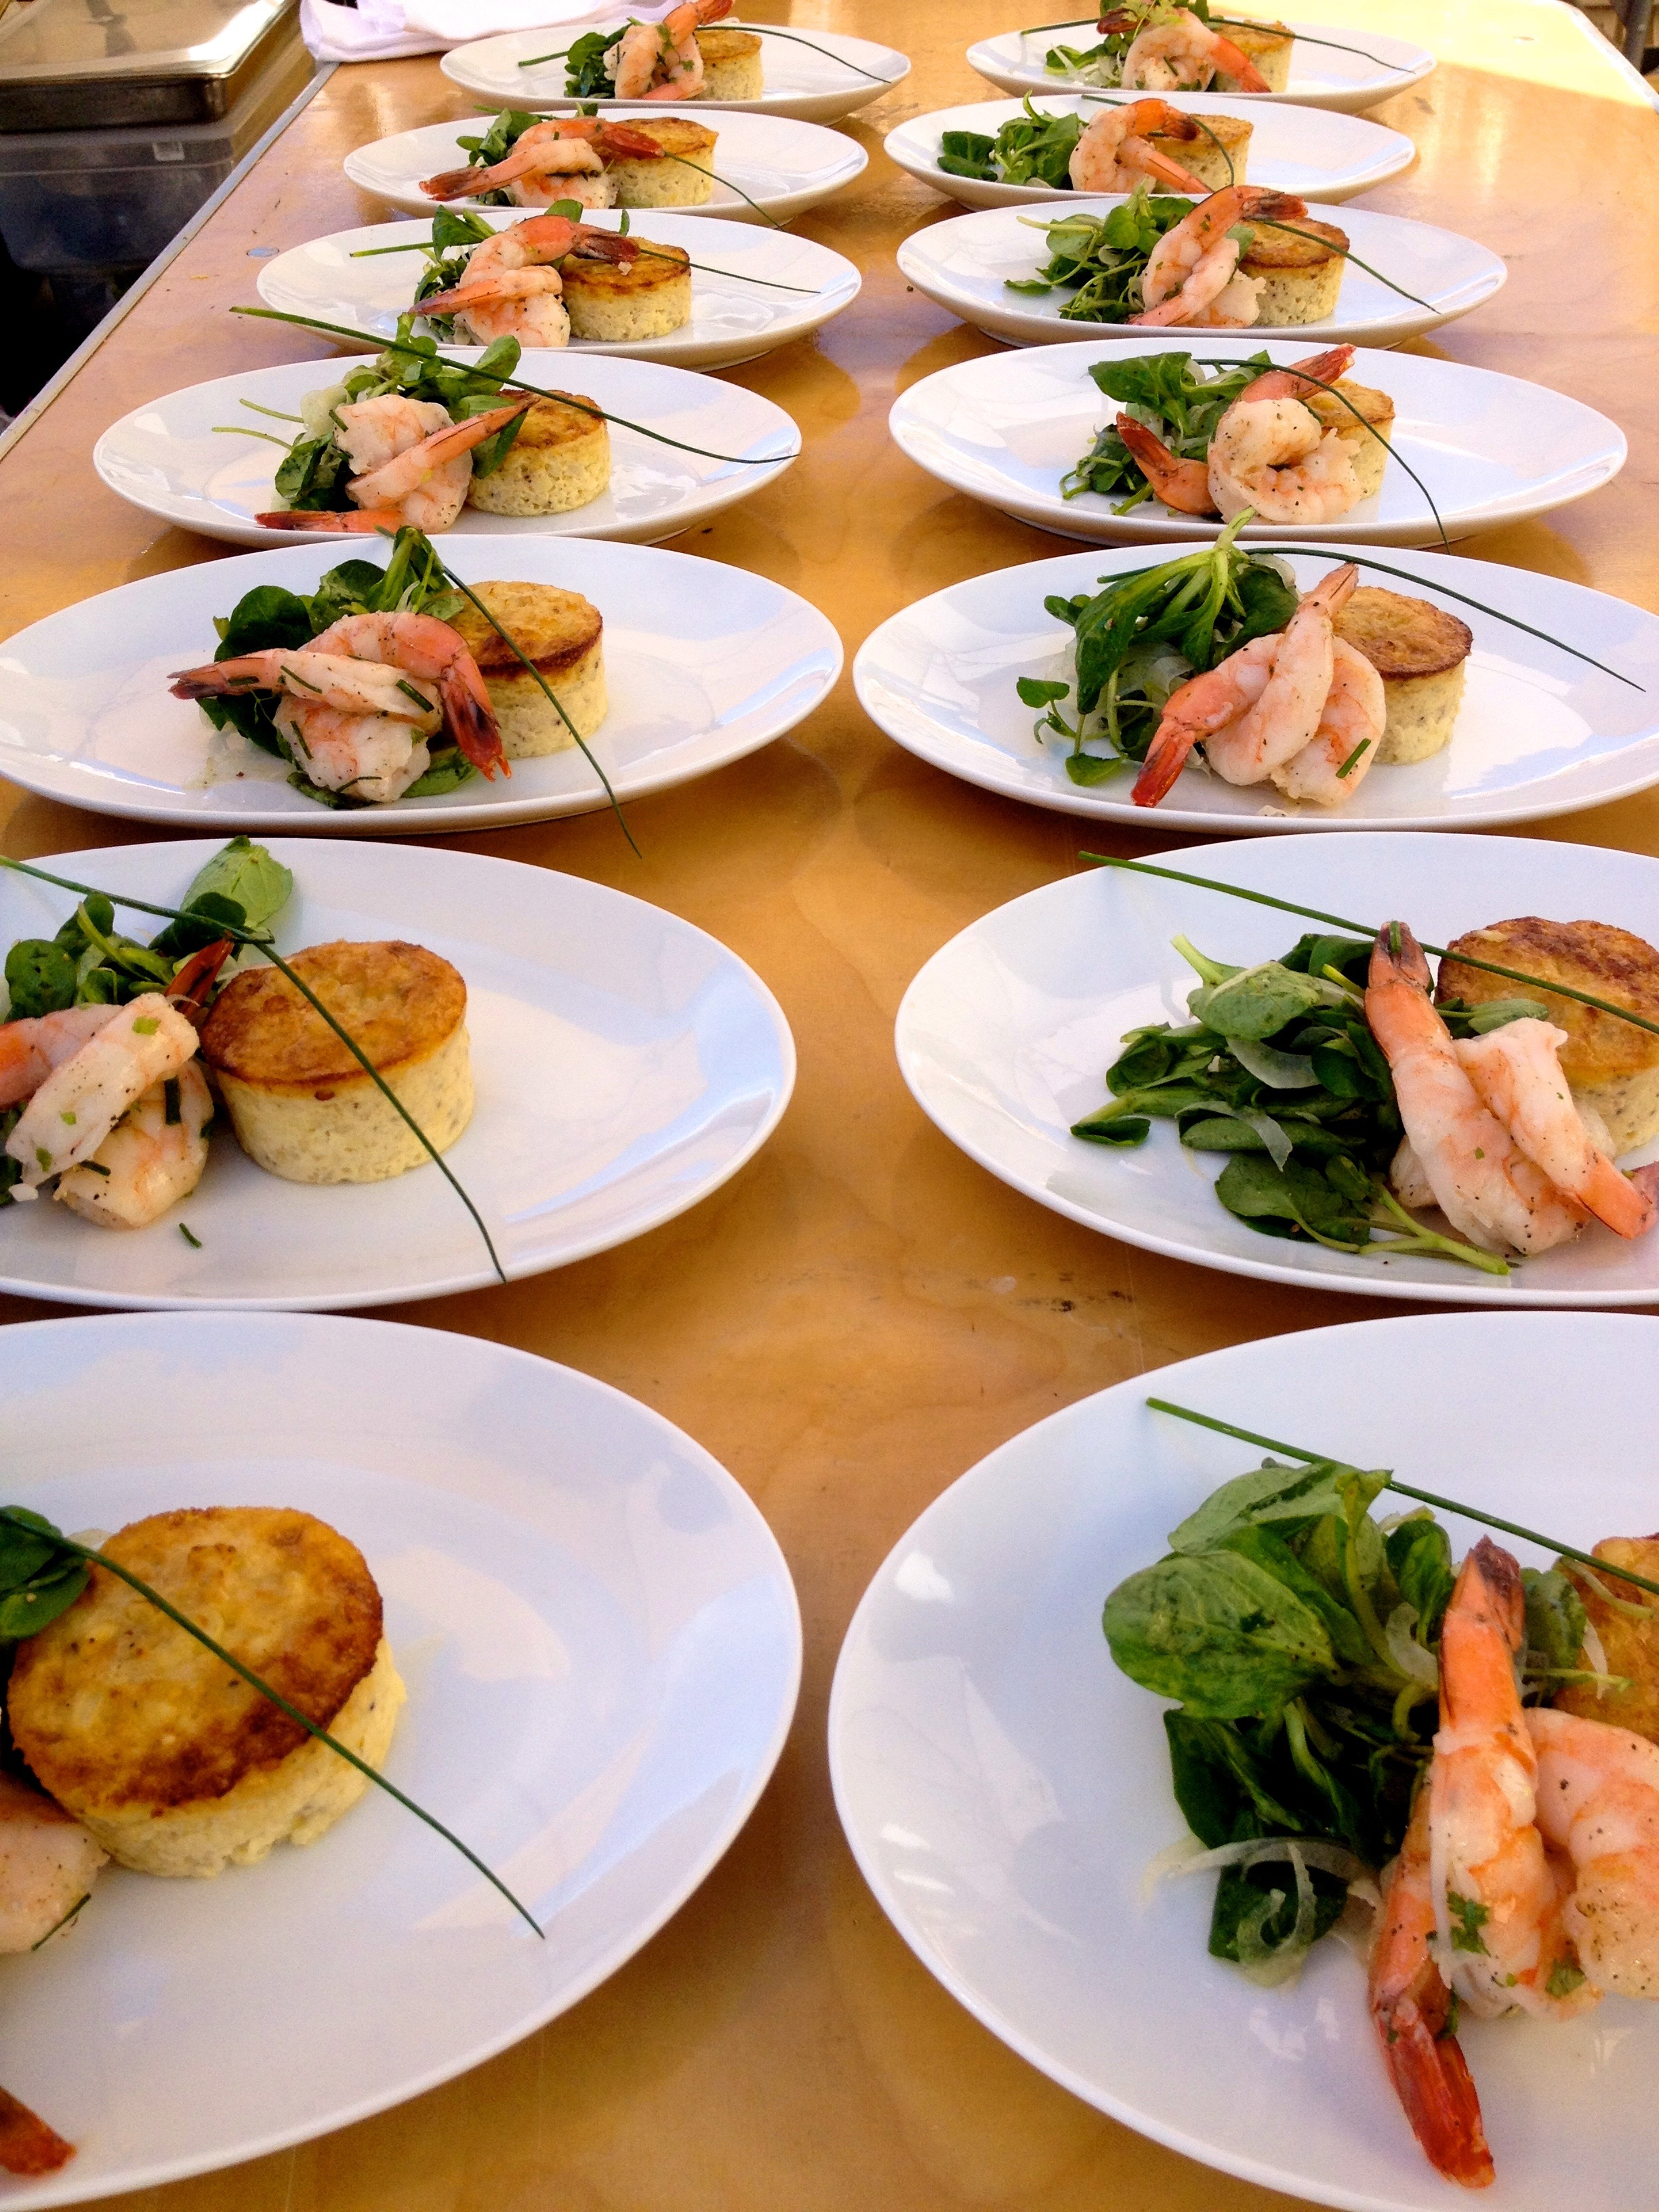 Flanagan Winery Shrimp Salad Plates